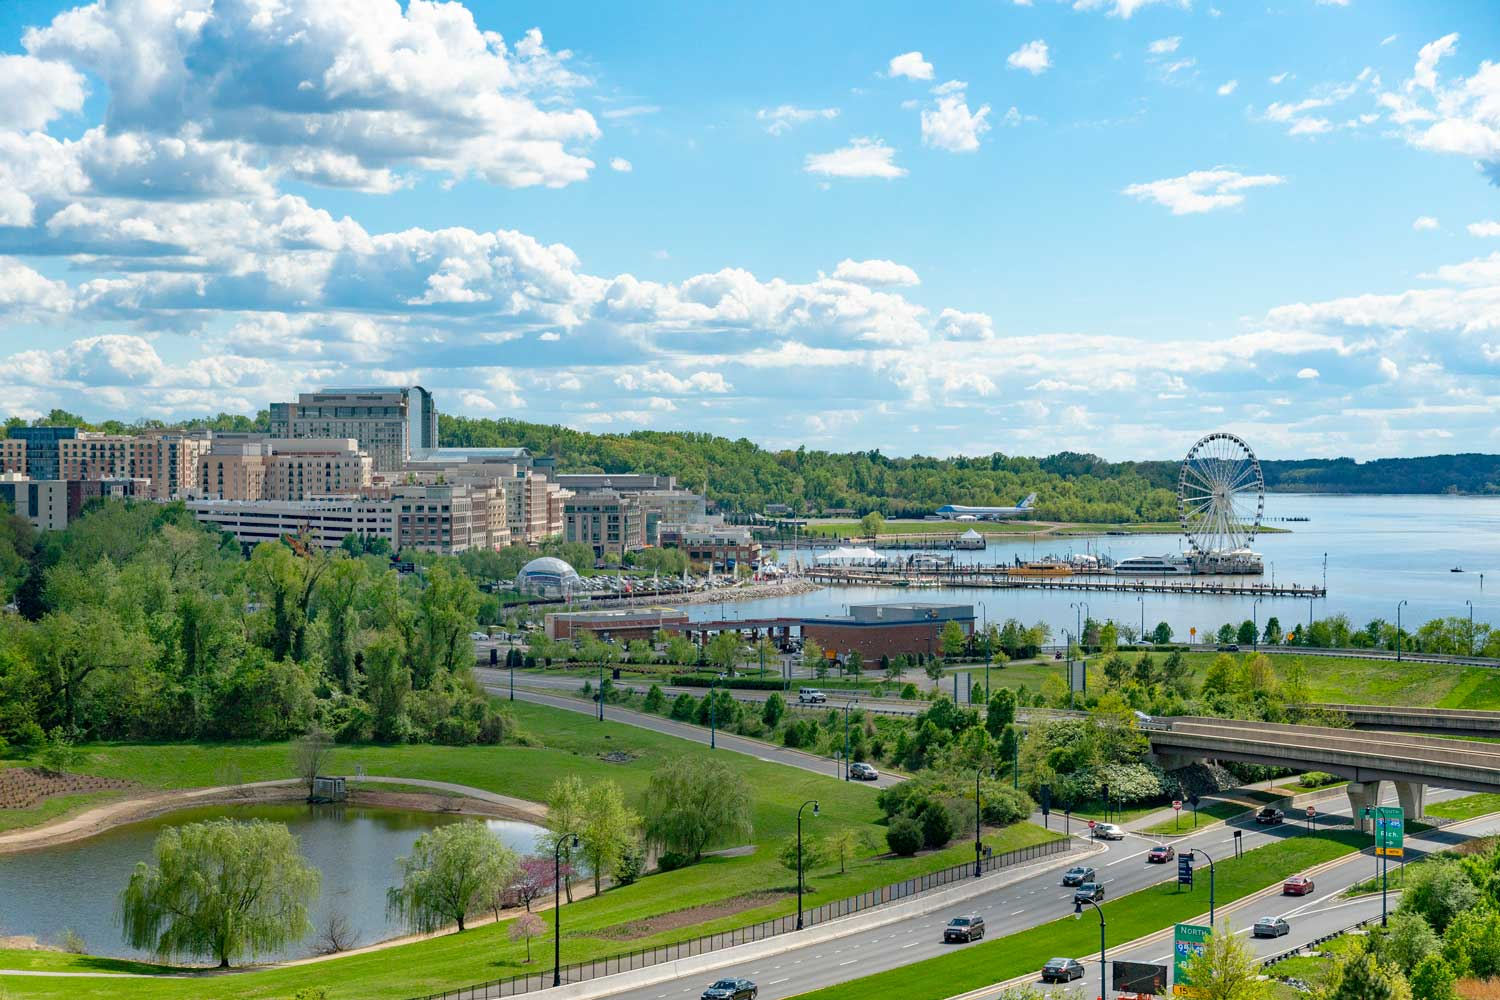 National Harbor is 20 minutes from Woodmont Park Apartments in Alexandria, VA